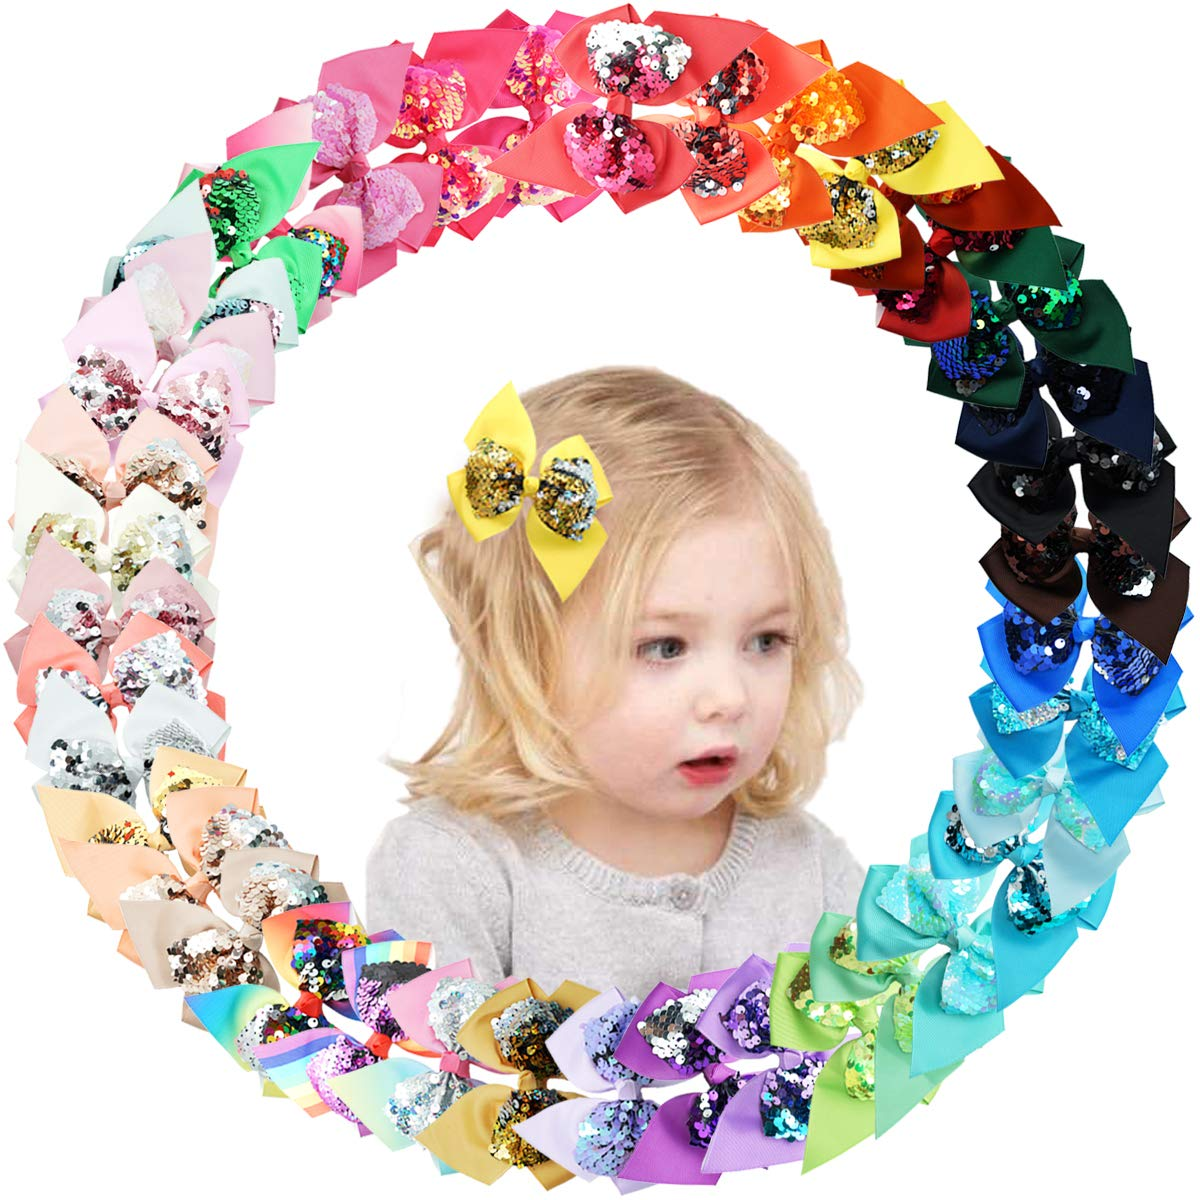 40 Colors Sequin Bows Popular shop is Large-scale sale the lowest price challenge Clips Inch Hair 4.5 Reversible